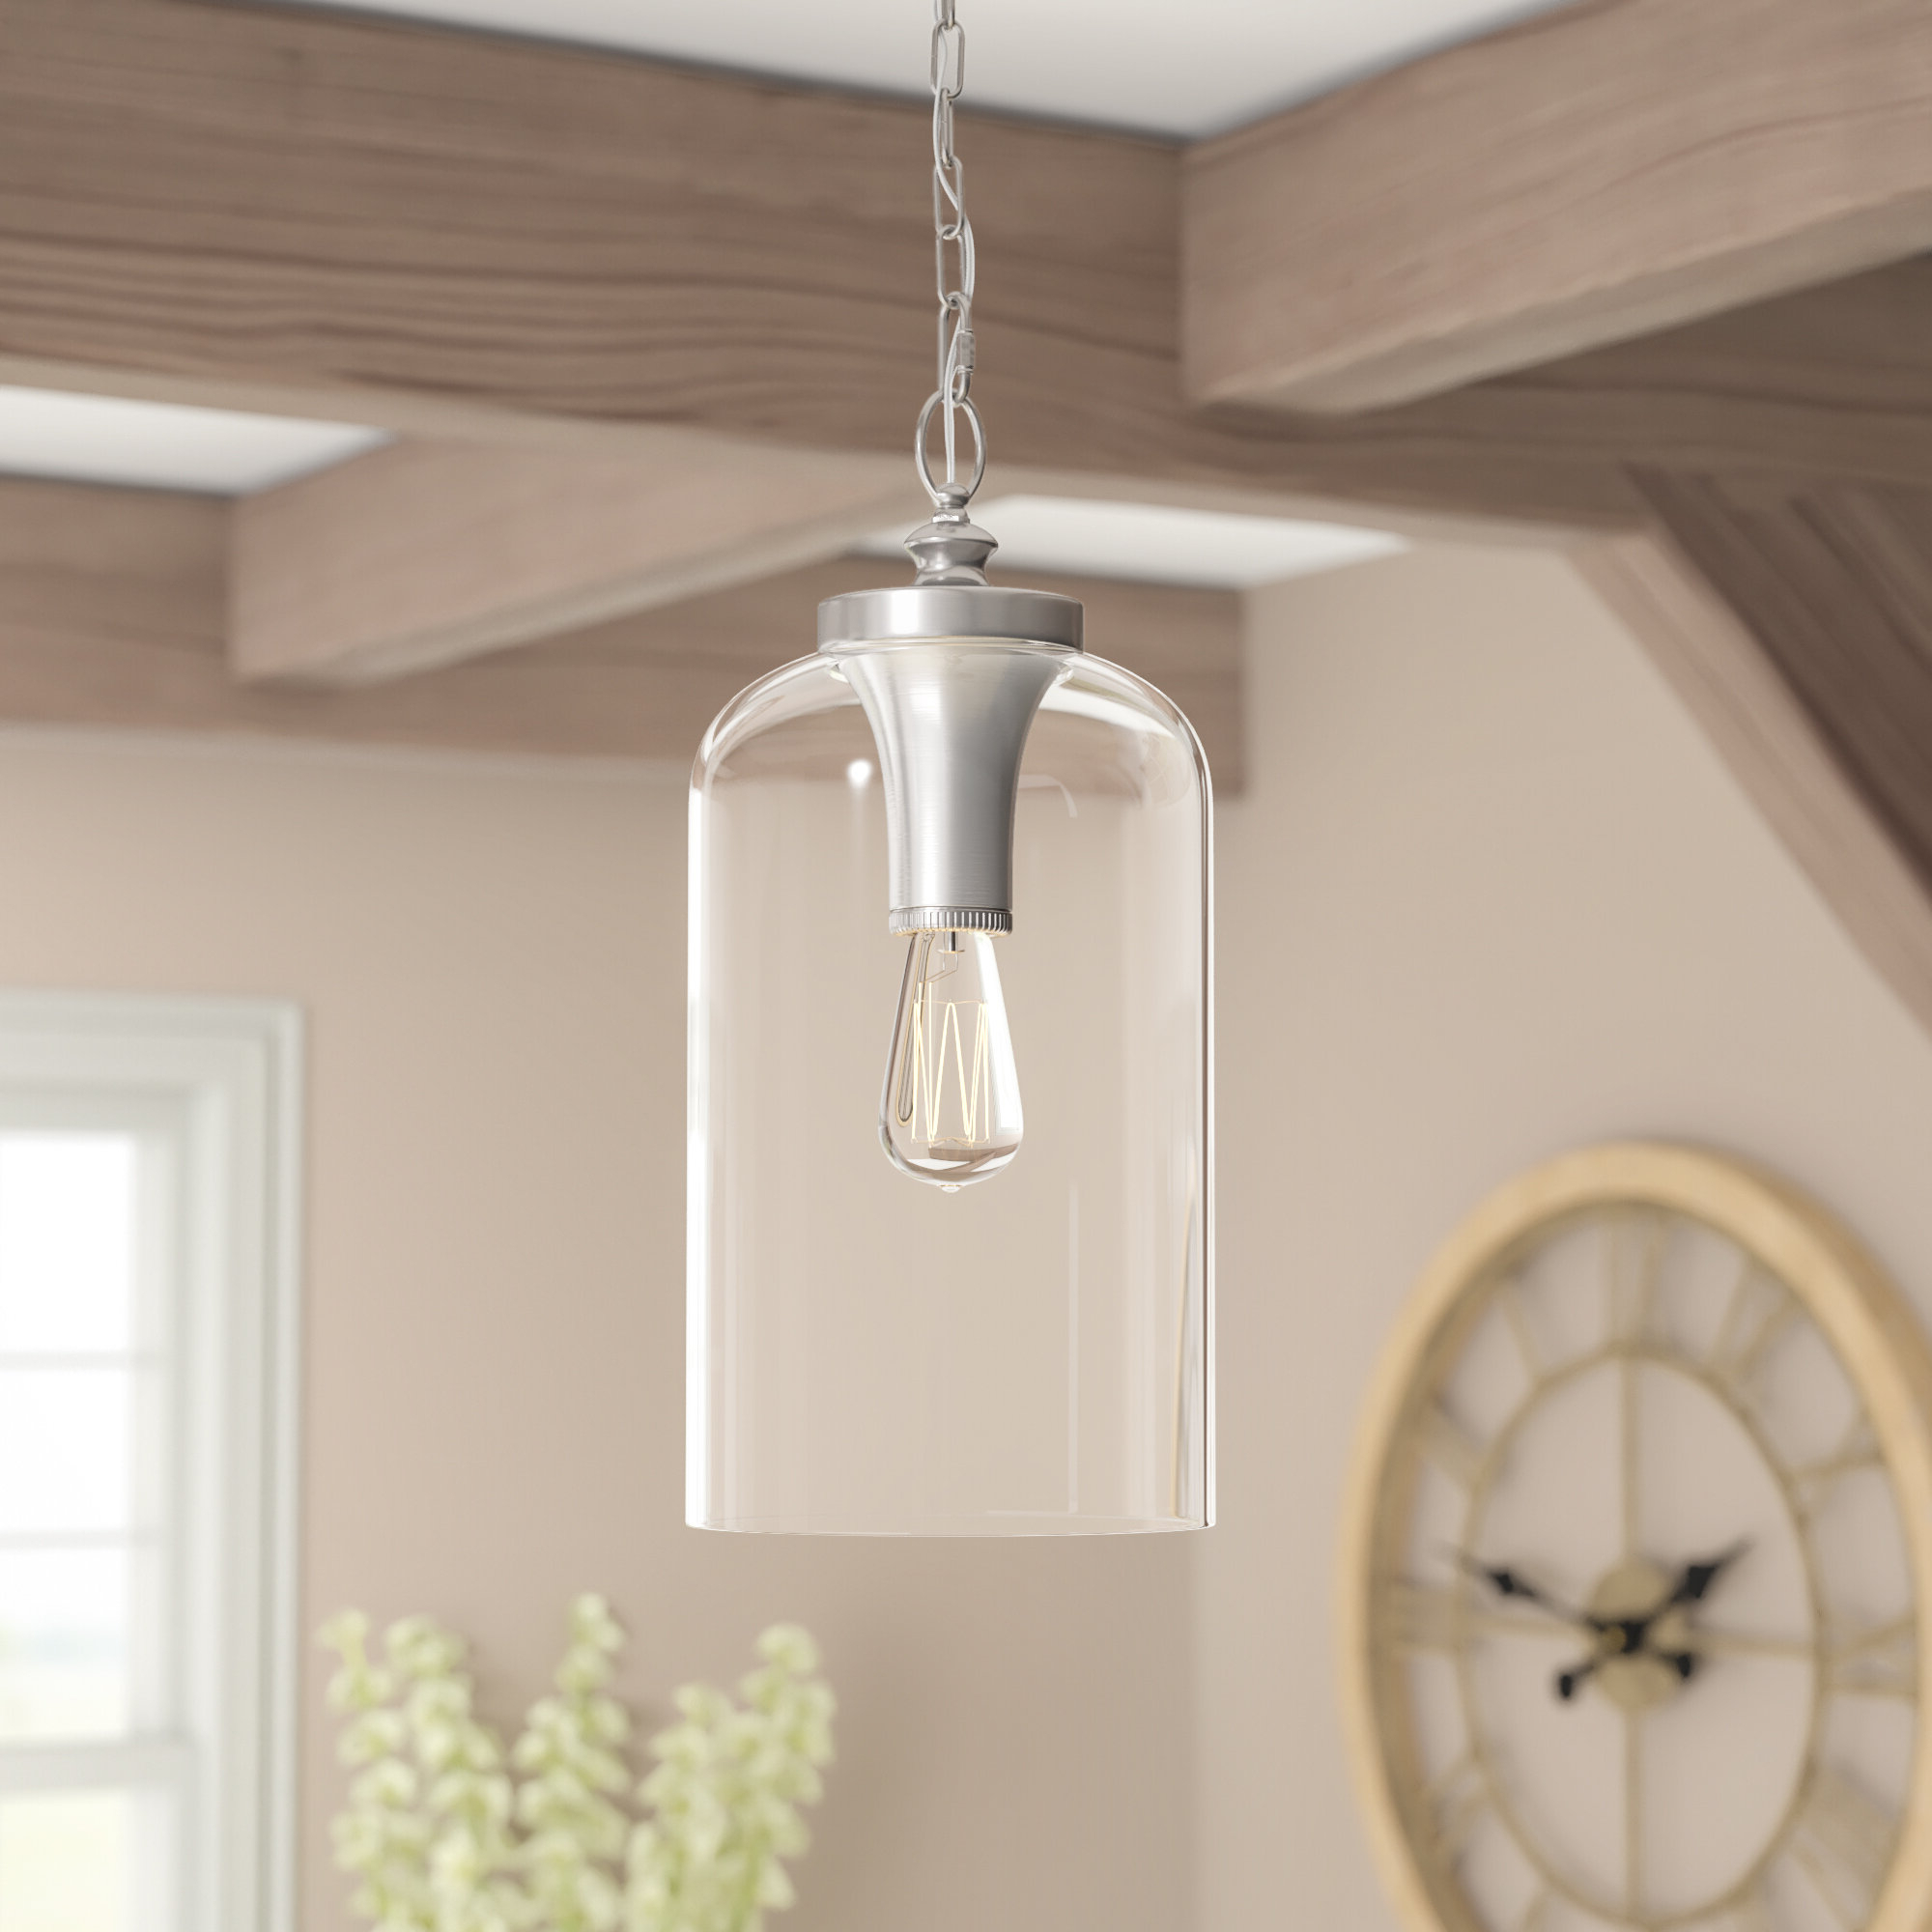 Nolan 1-Light Single Cylinder Pendant intended for Well-known Nolan 1-Light Lantern Chandeliers